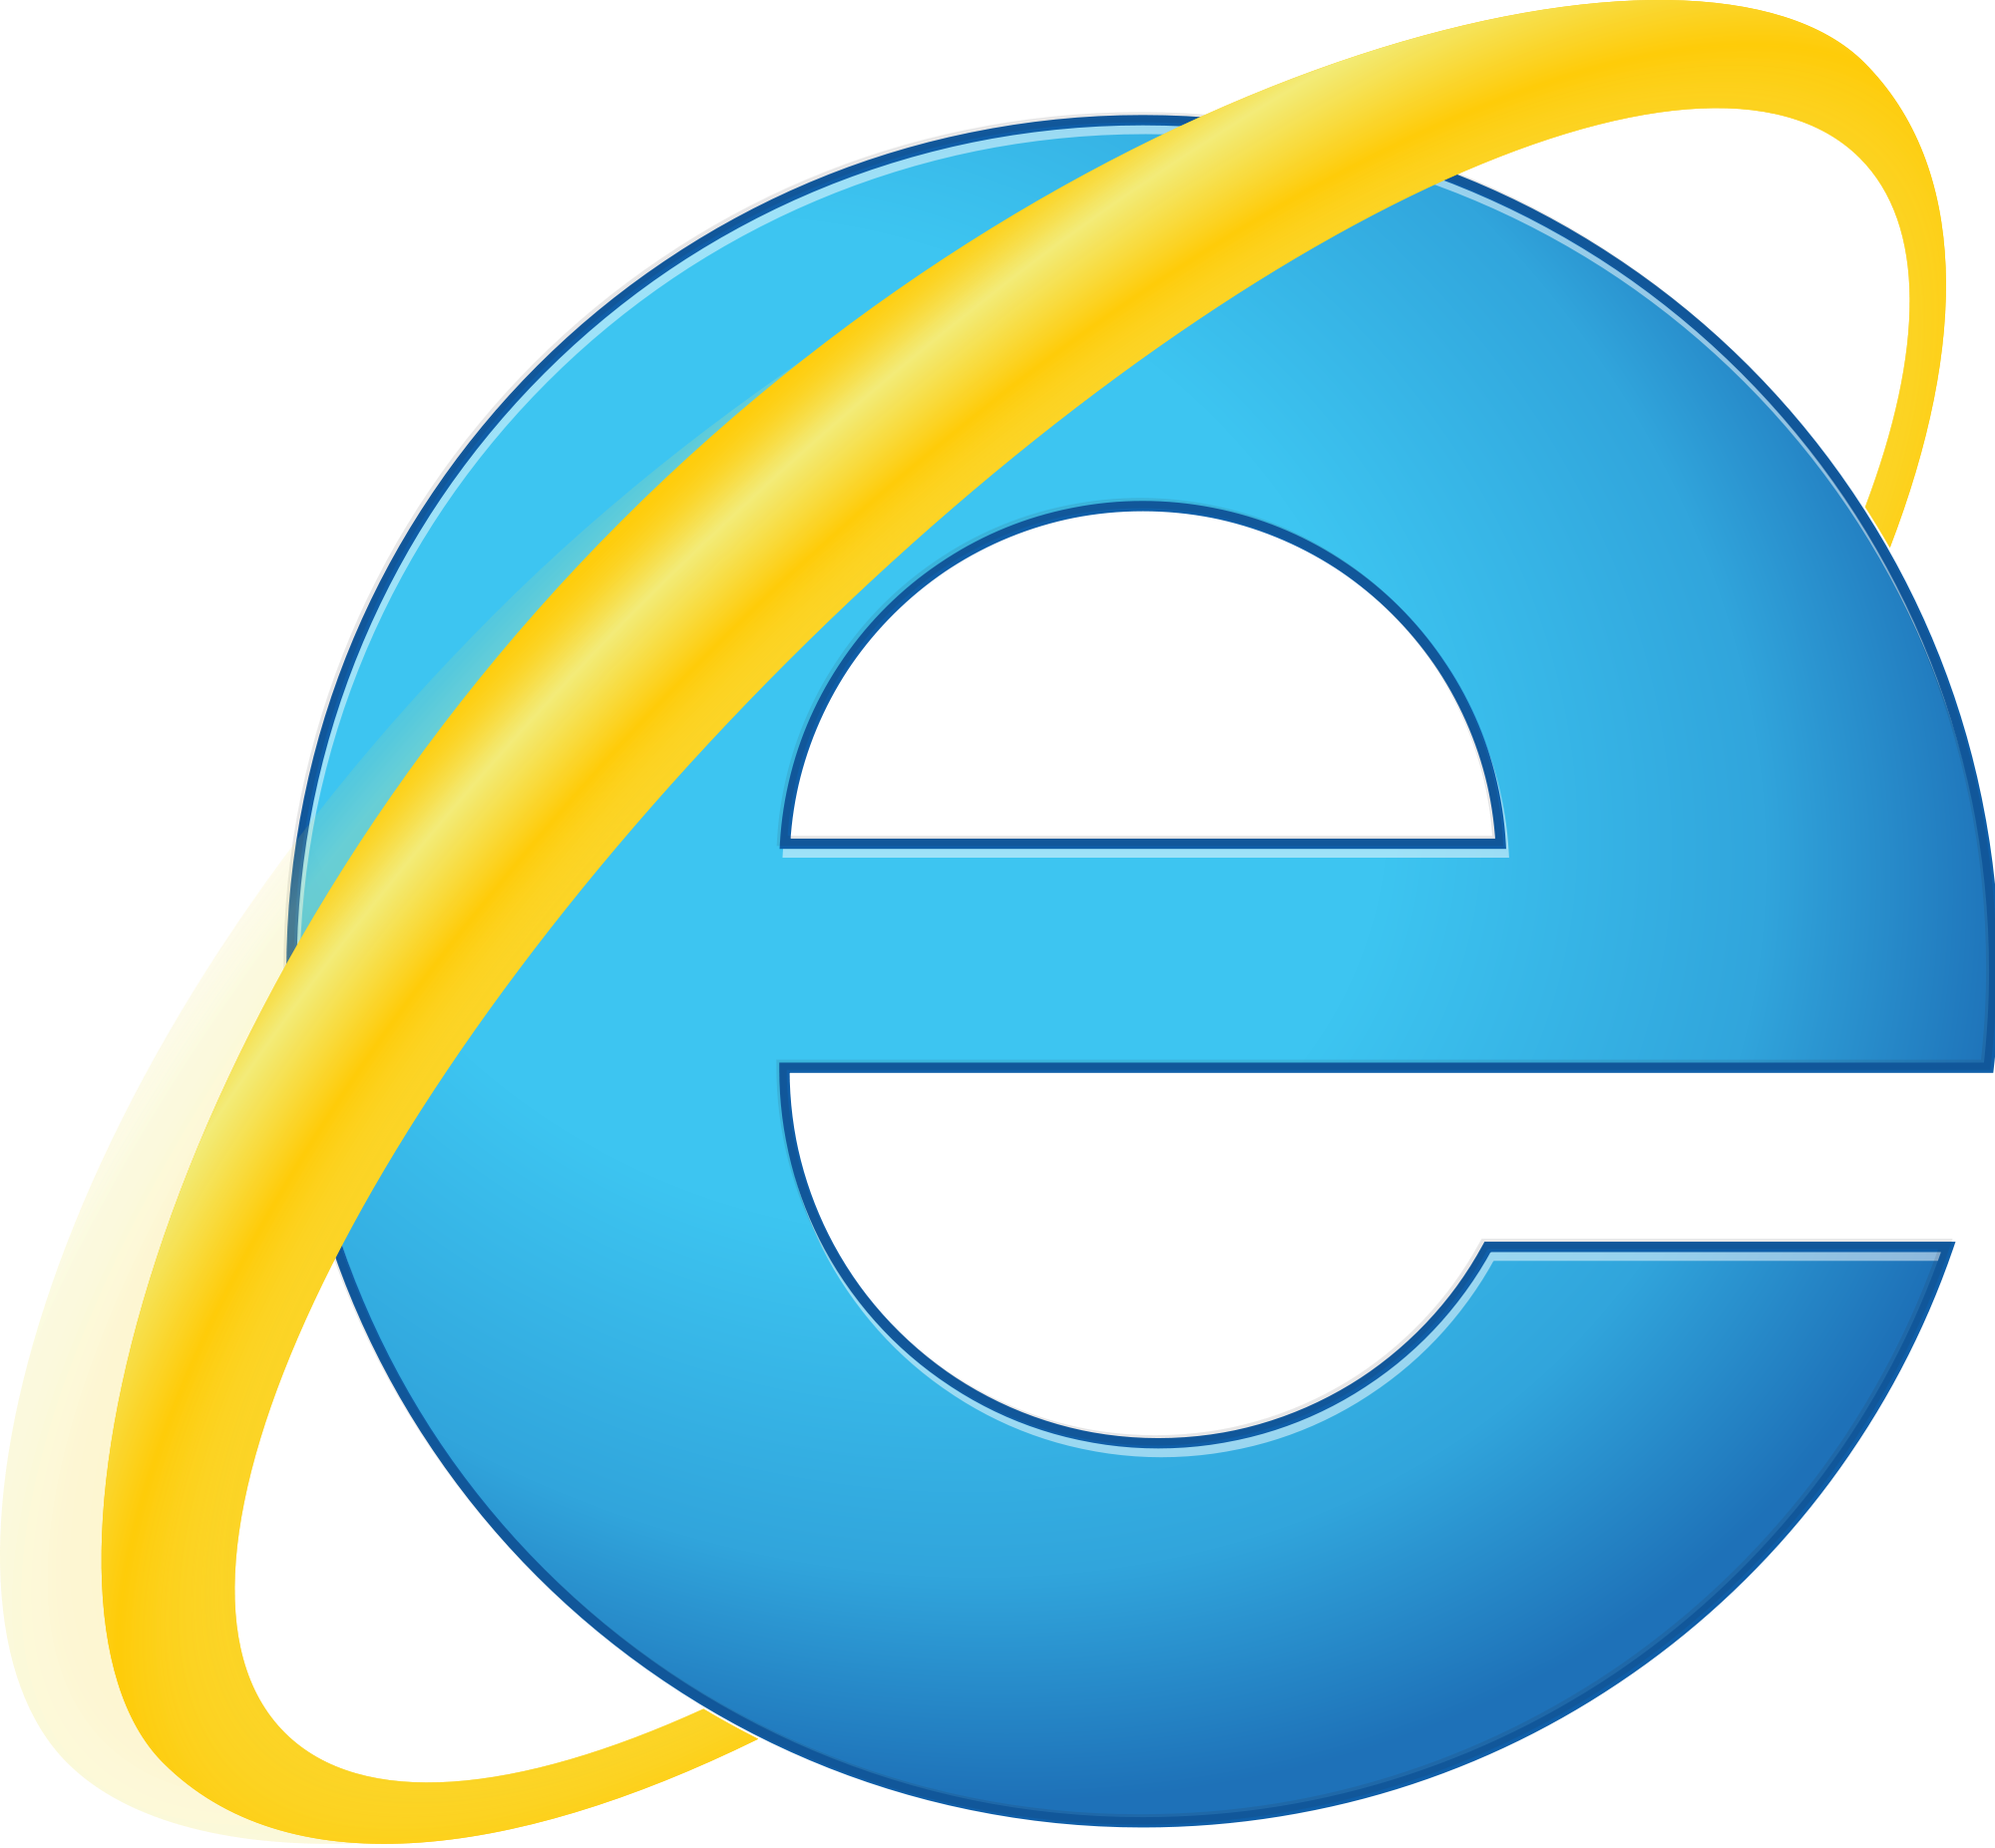 Internet Explorer Clipart.